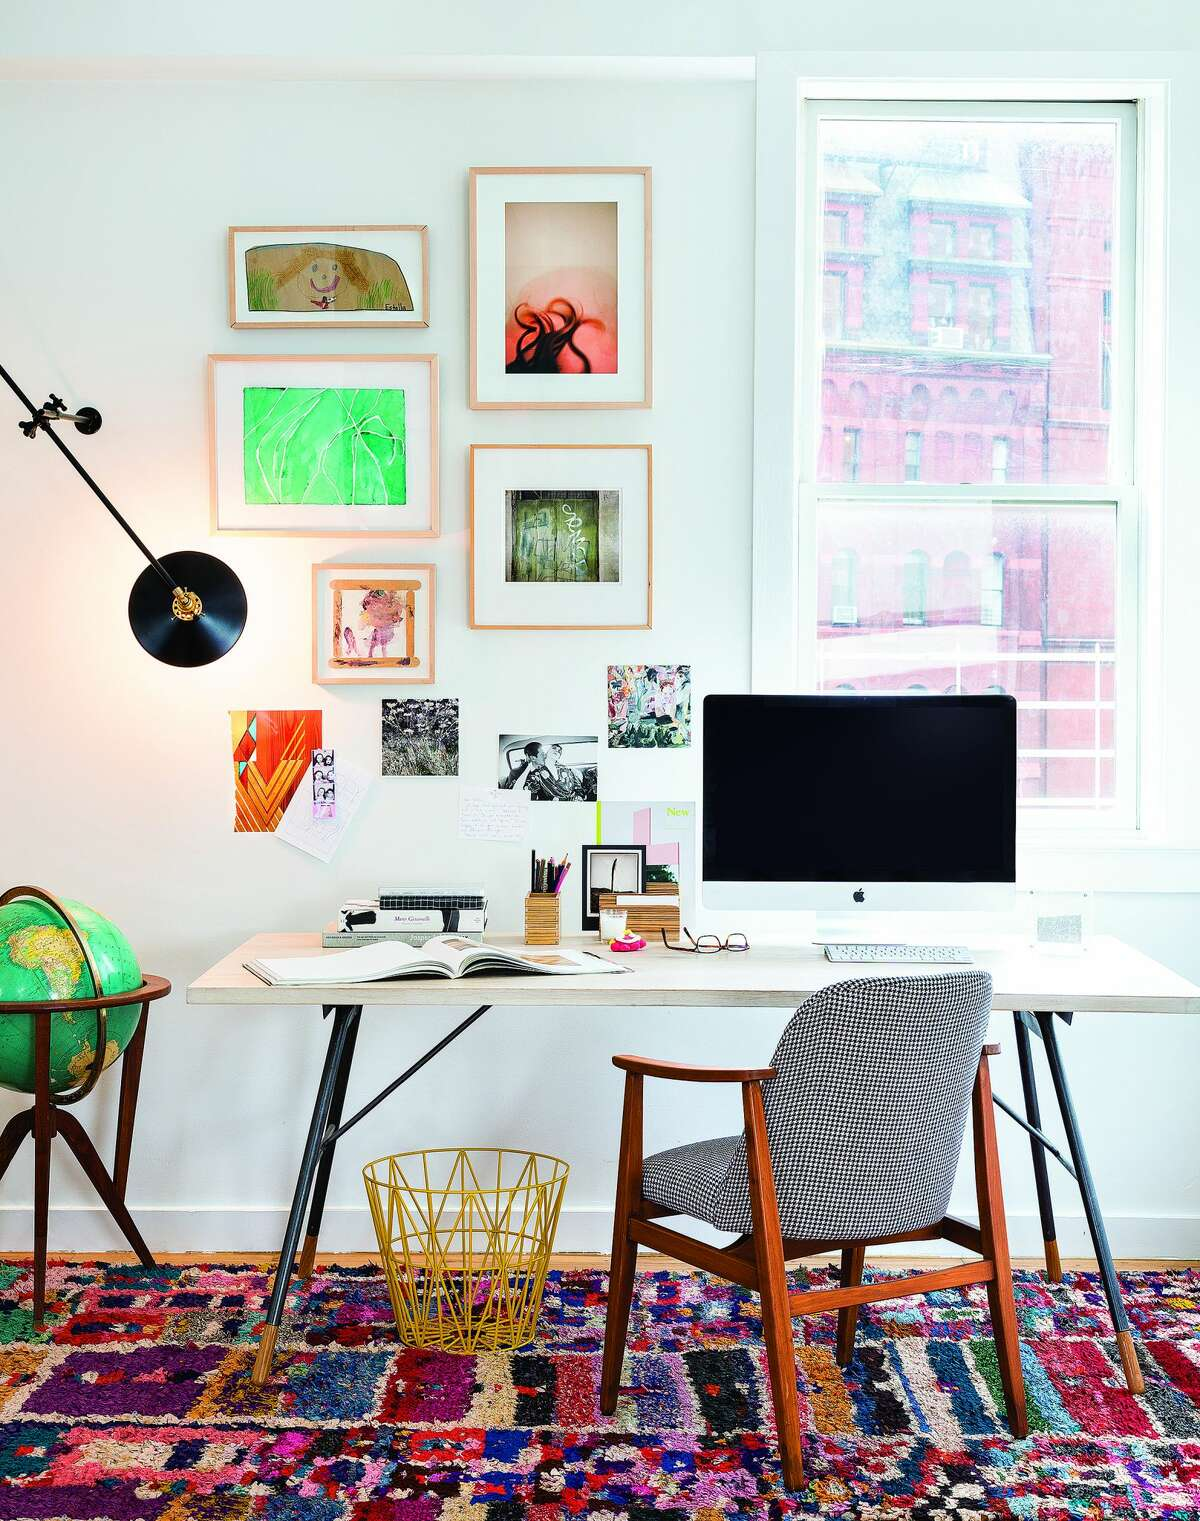 To make a desk or home office more functional, make sure you have good lighting, room for a computer and other things, and containers for holding pencils or other things you use. And don't forget the wastebasket. Computers may make for paperless work, but we somehow still have plenty of things to throw away.